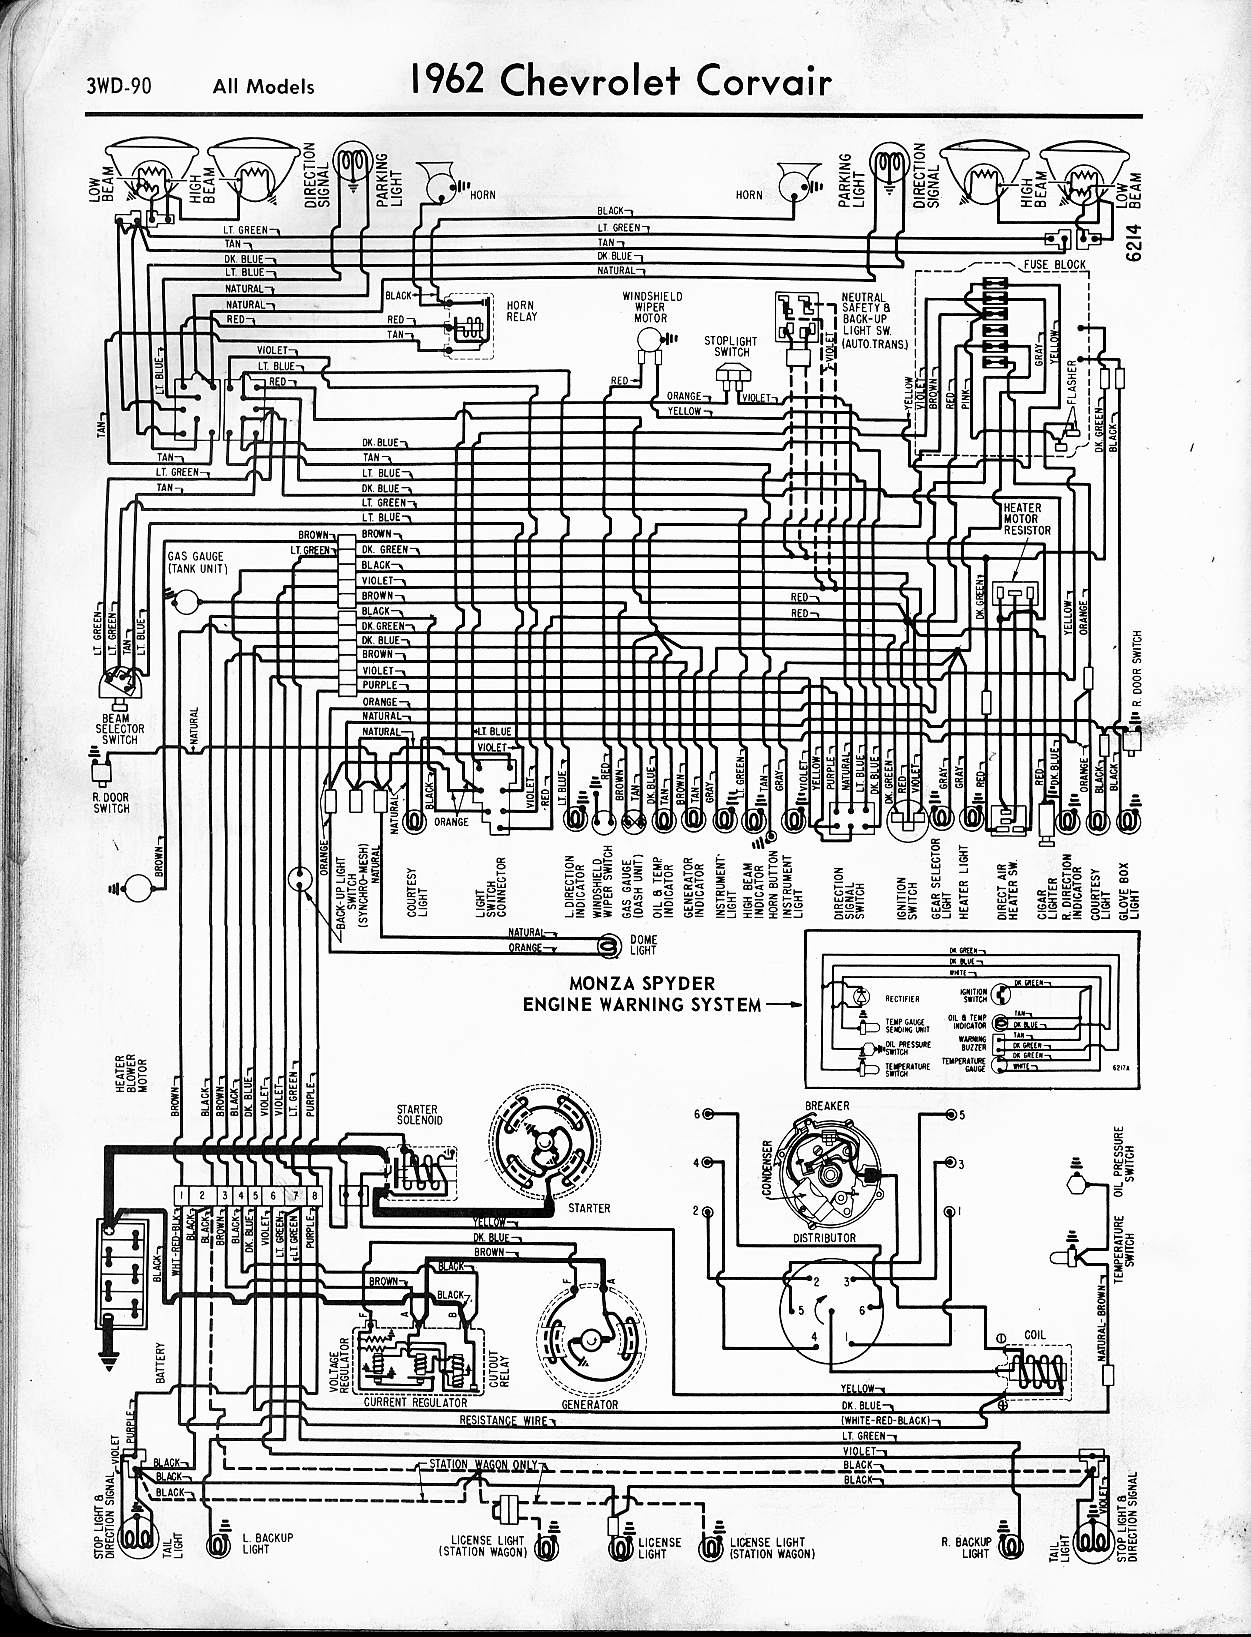 57 Chevy Starter Wiring Library 1965 283 Alternator Diagram 1962 Corvair